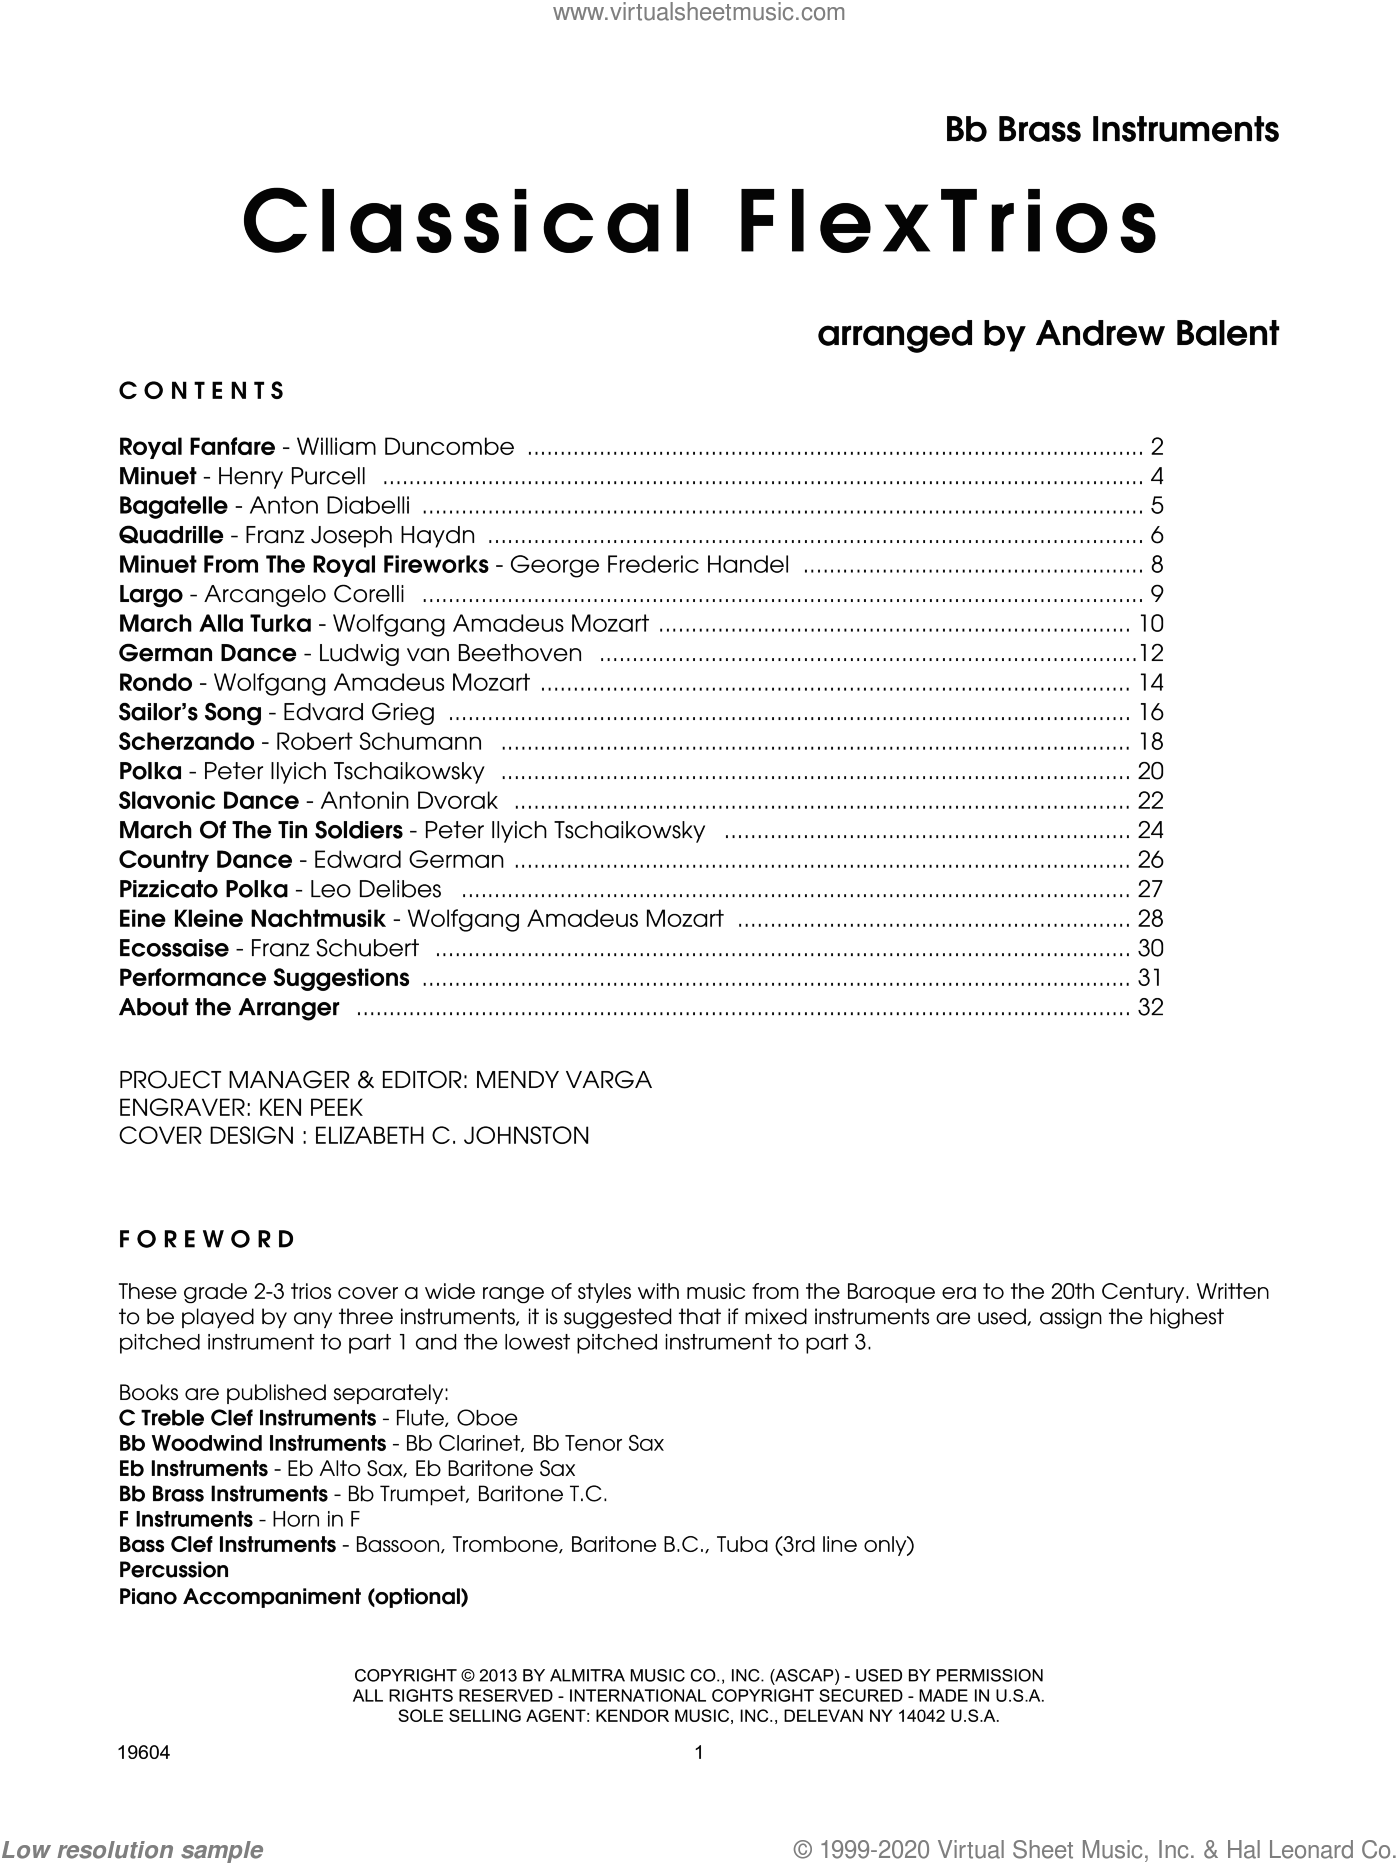 Classical FlexTrios, Bb brass instruments sheet music for trio (Bb instruments) by Balent